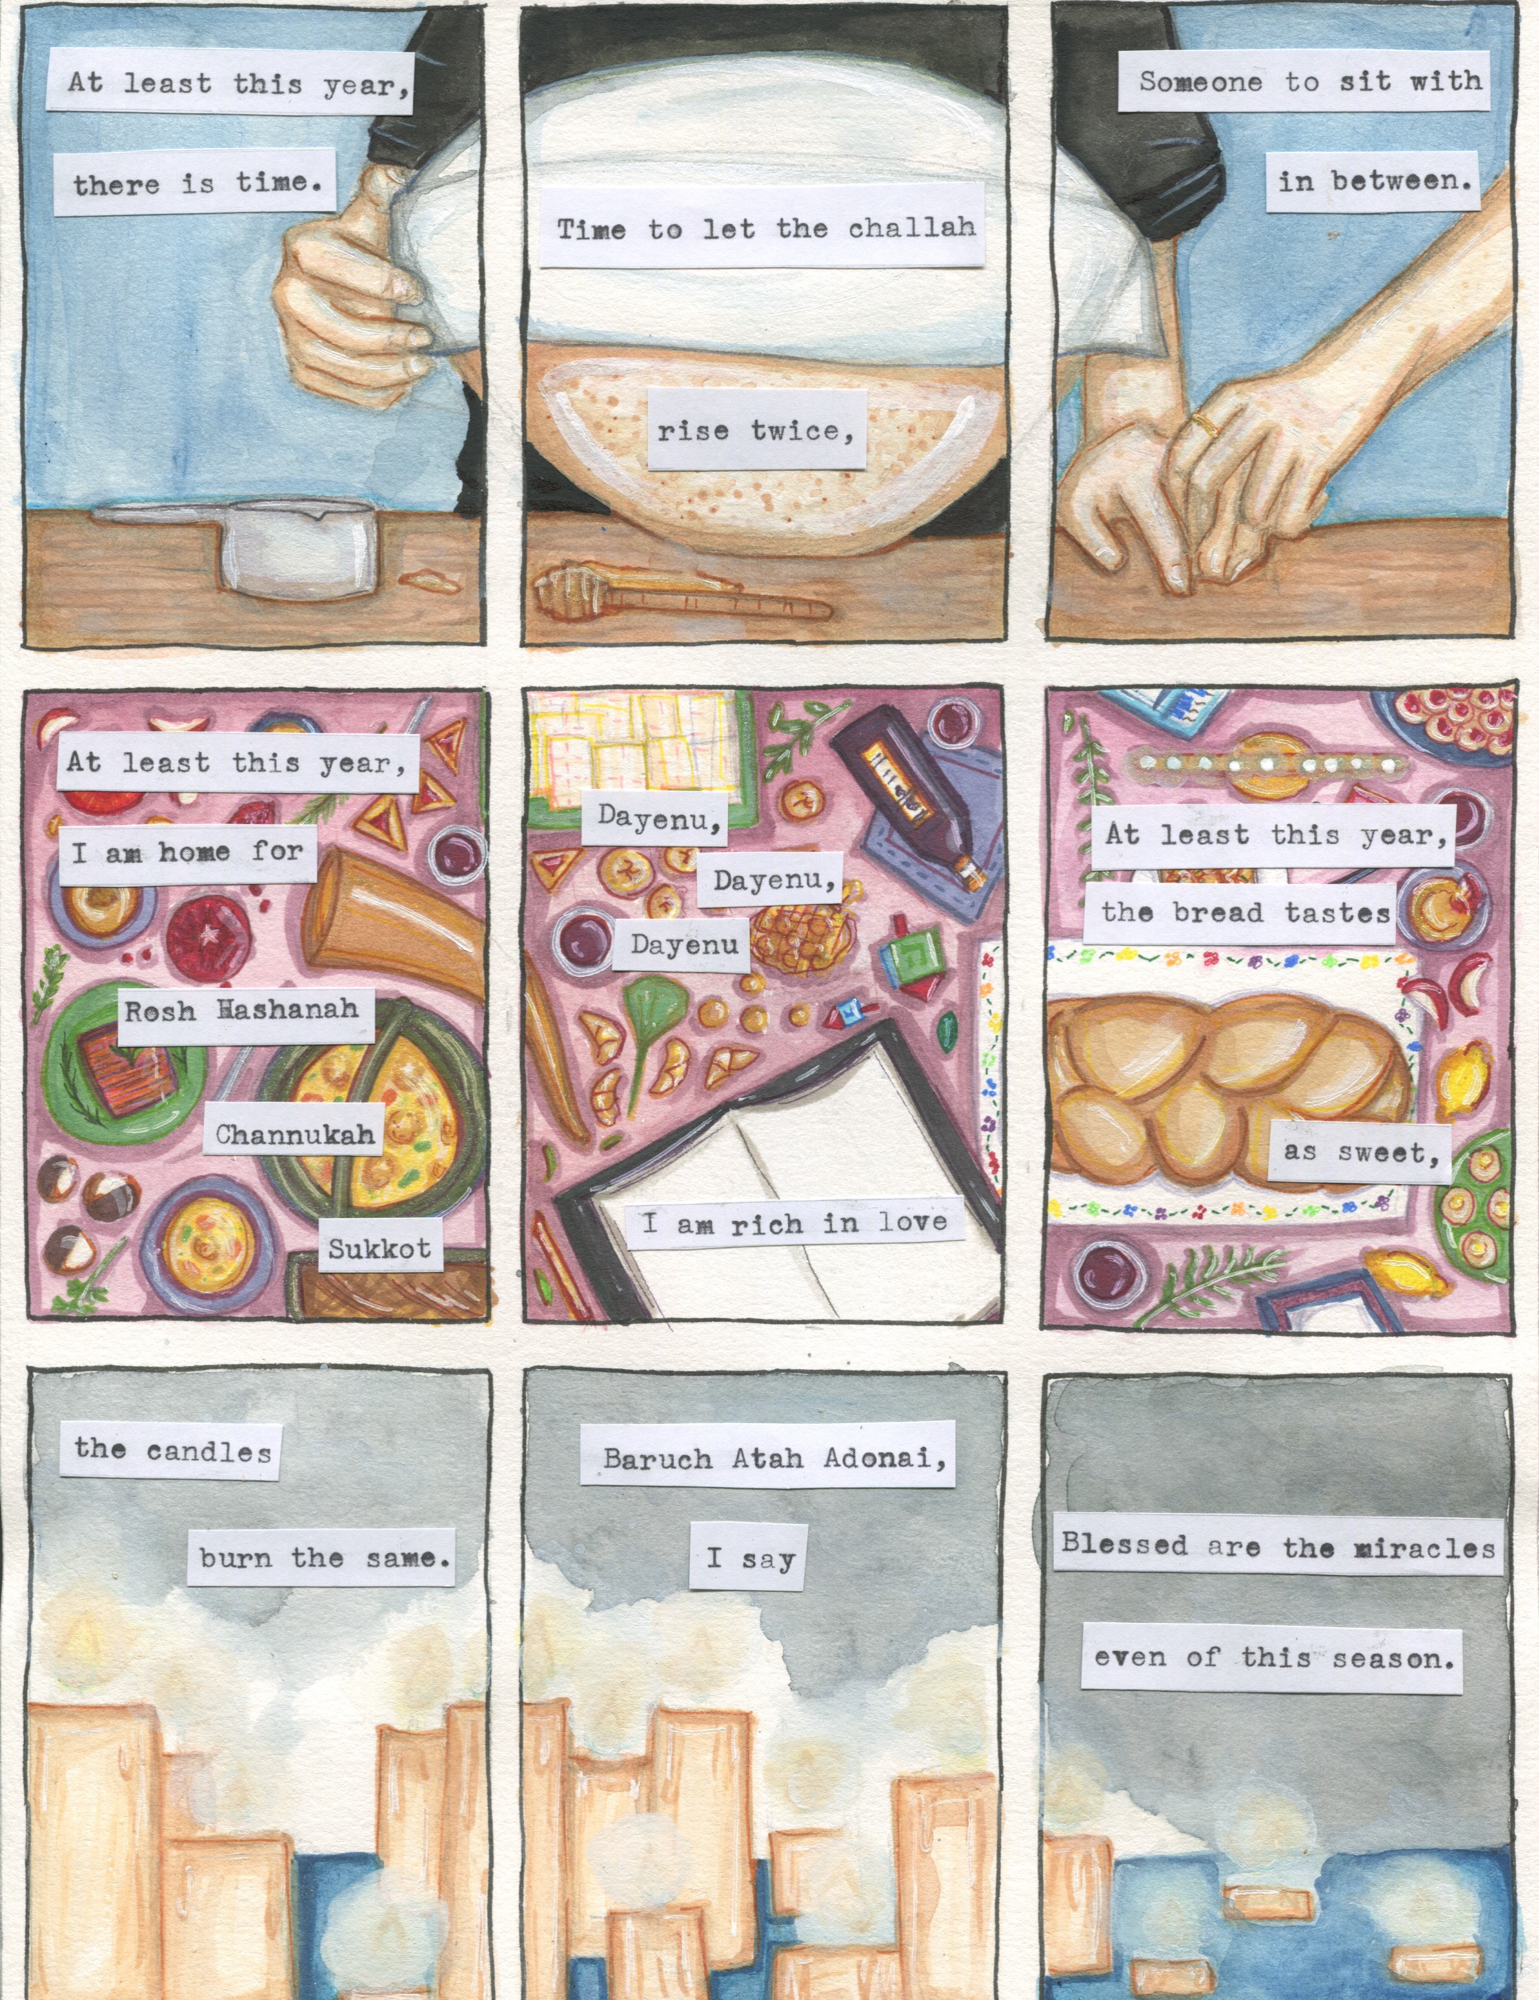 Comic strip that reads the following: At least this year, there is time. Time to let the challah rise twice, Someone to sit with in between. At least this year, I am home for Rosh Hashanah, Channukah, Sukkot, Dayenu, dayenu, dayenu, I am rich in love. At least this year, the bread tastes as sweet, the candles burn the same. Baruch Atah Adonai, I say. Blessed are the miracles even of this season.